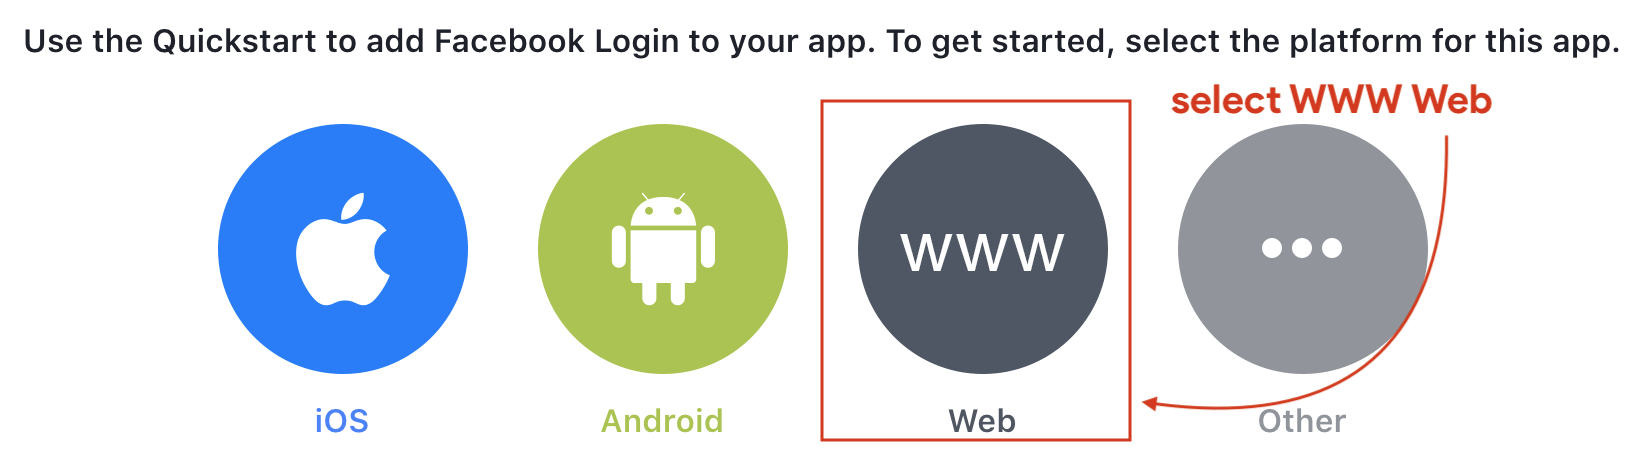 Select the platform for Facebook Login Page